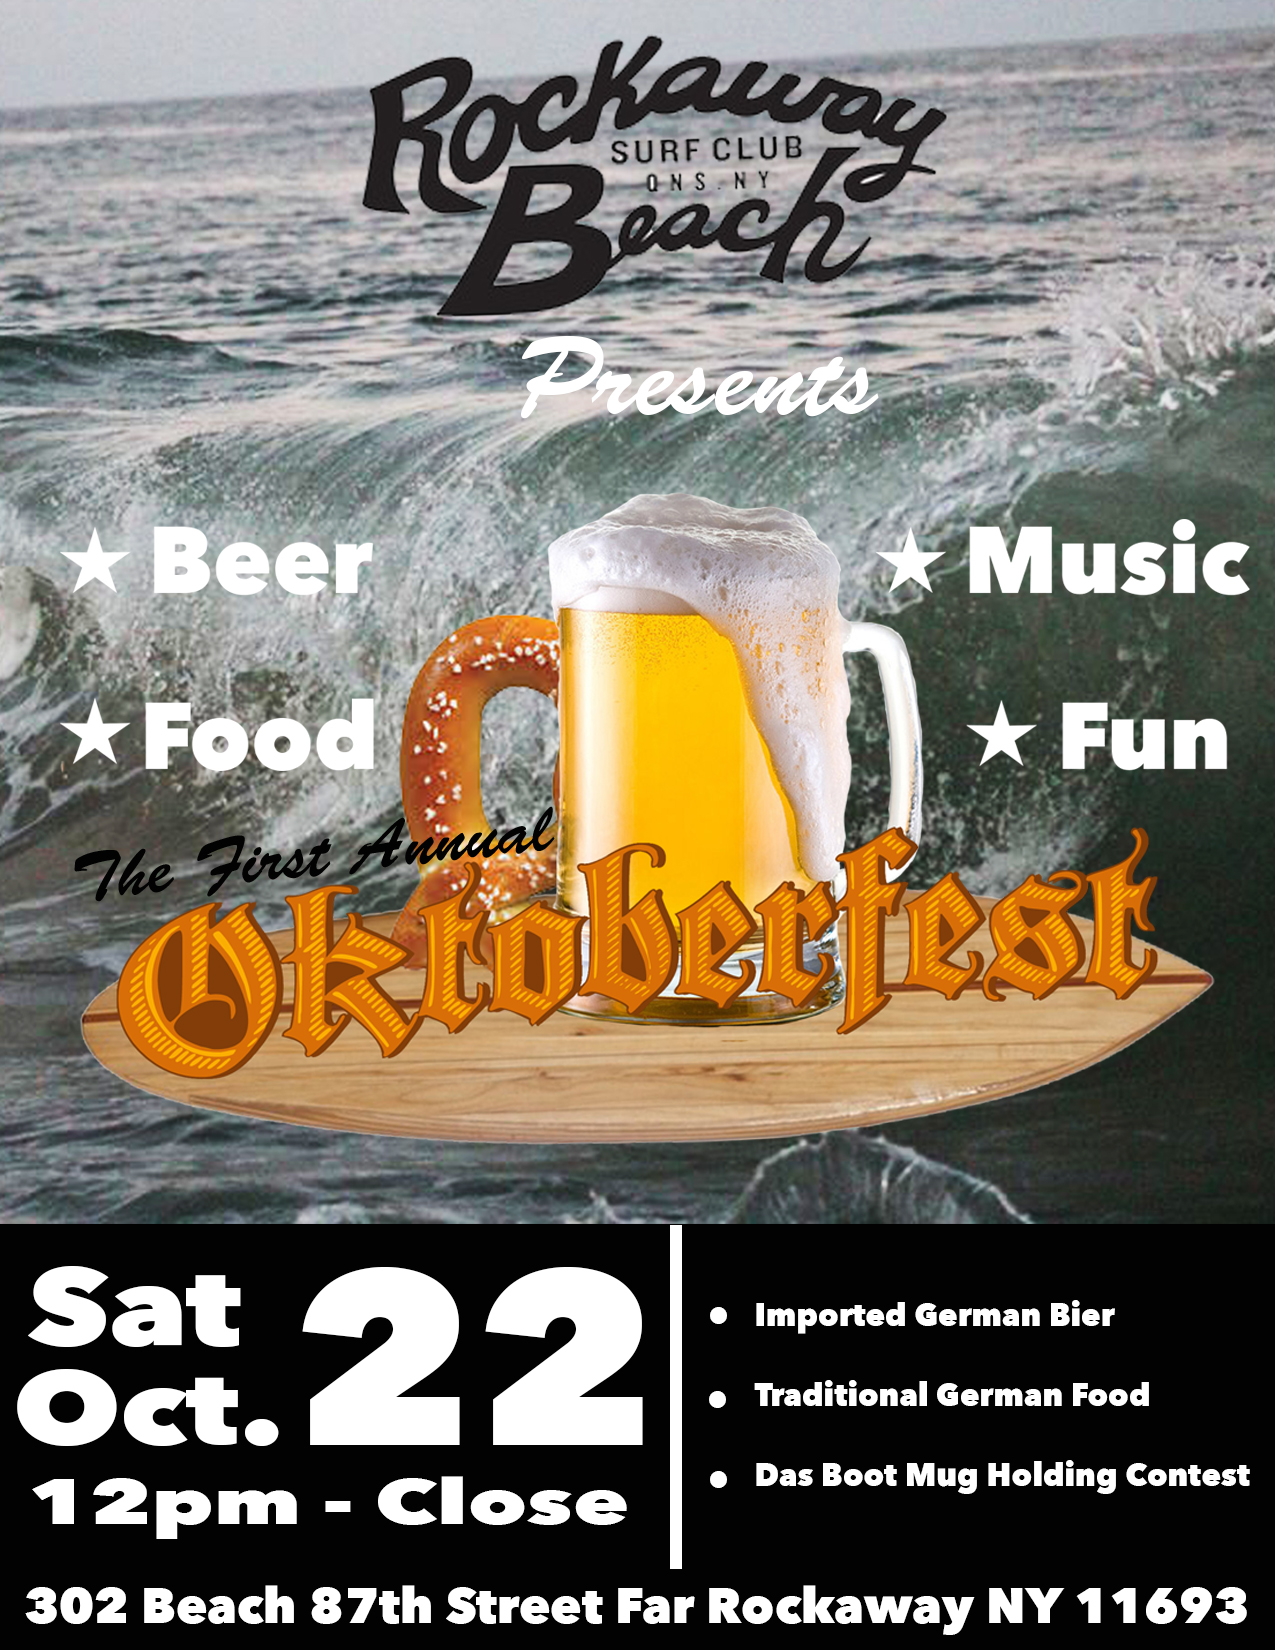 oktoberfest rockaway beach surf club